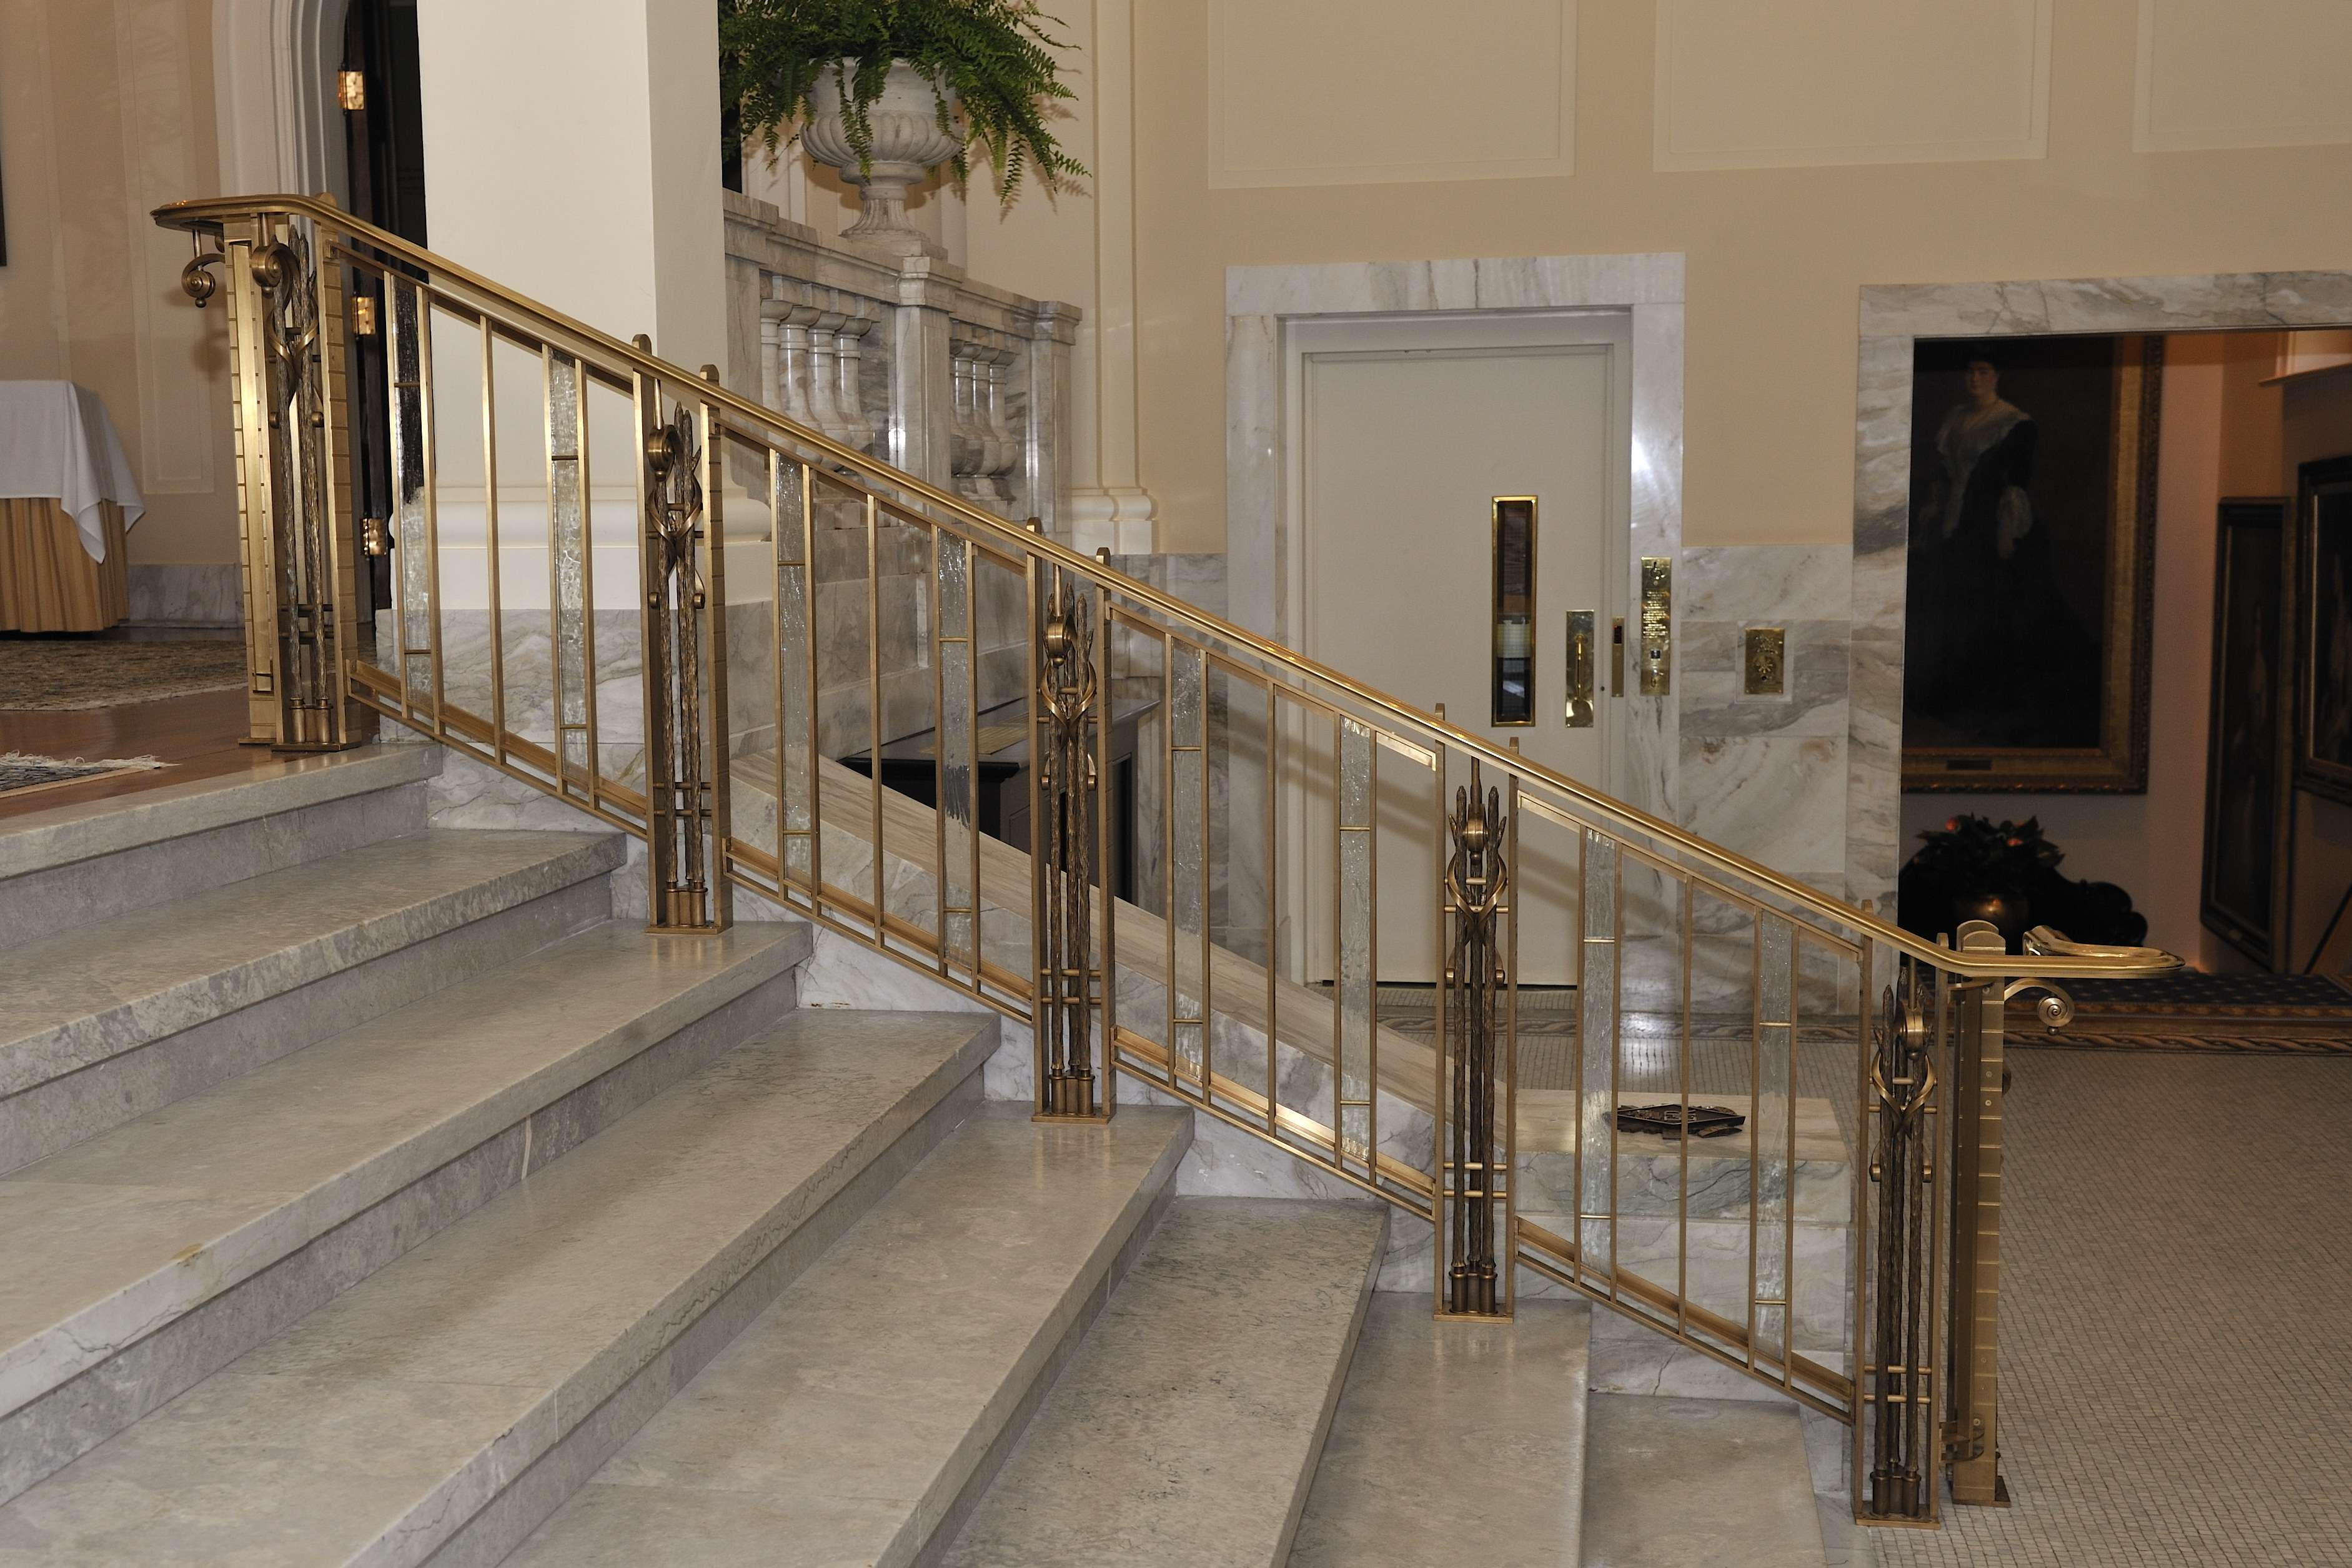 Bearing decorative and commemorative elements to celebrate the Diamond Jubilee of Her Majesty, the new handrails have been crafted using noble materials -- bronze and architectural glass -- to highlight the symbolic and historic importance of Rideau Hall.